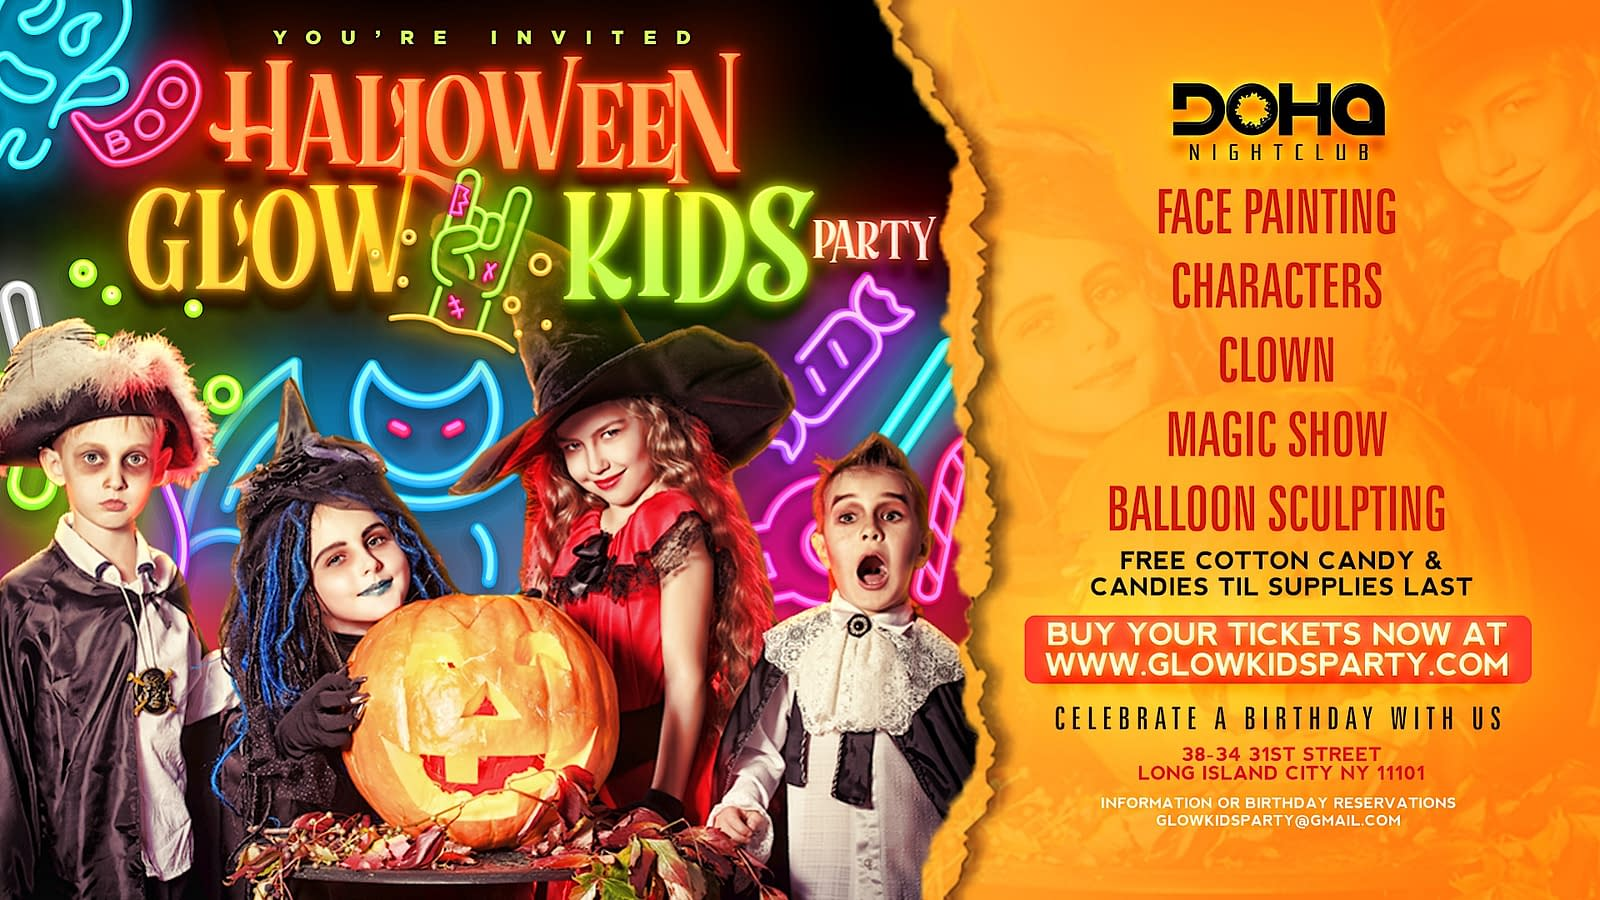 Best Halloween Kids Party Glow Kids Party In Nyc